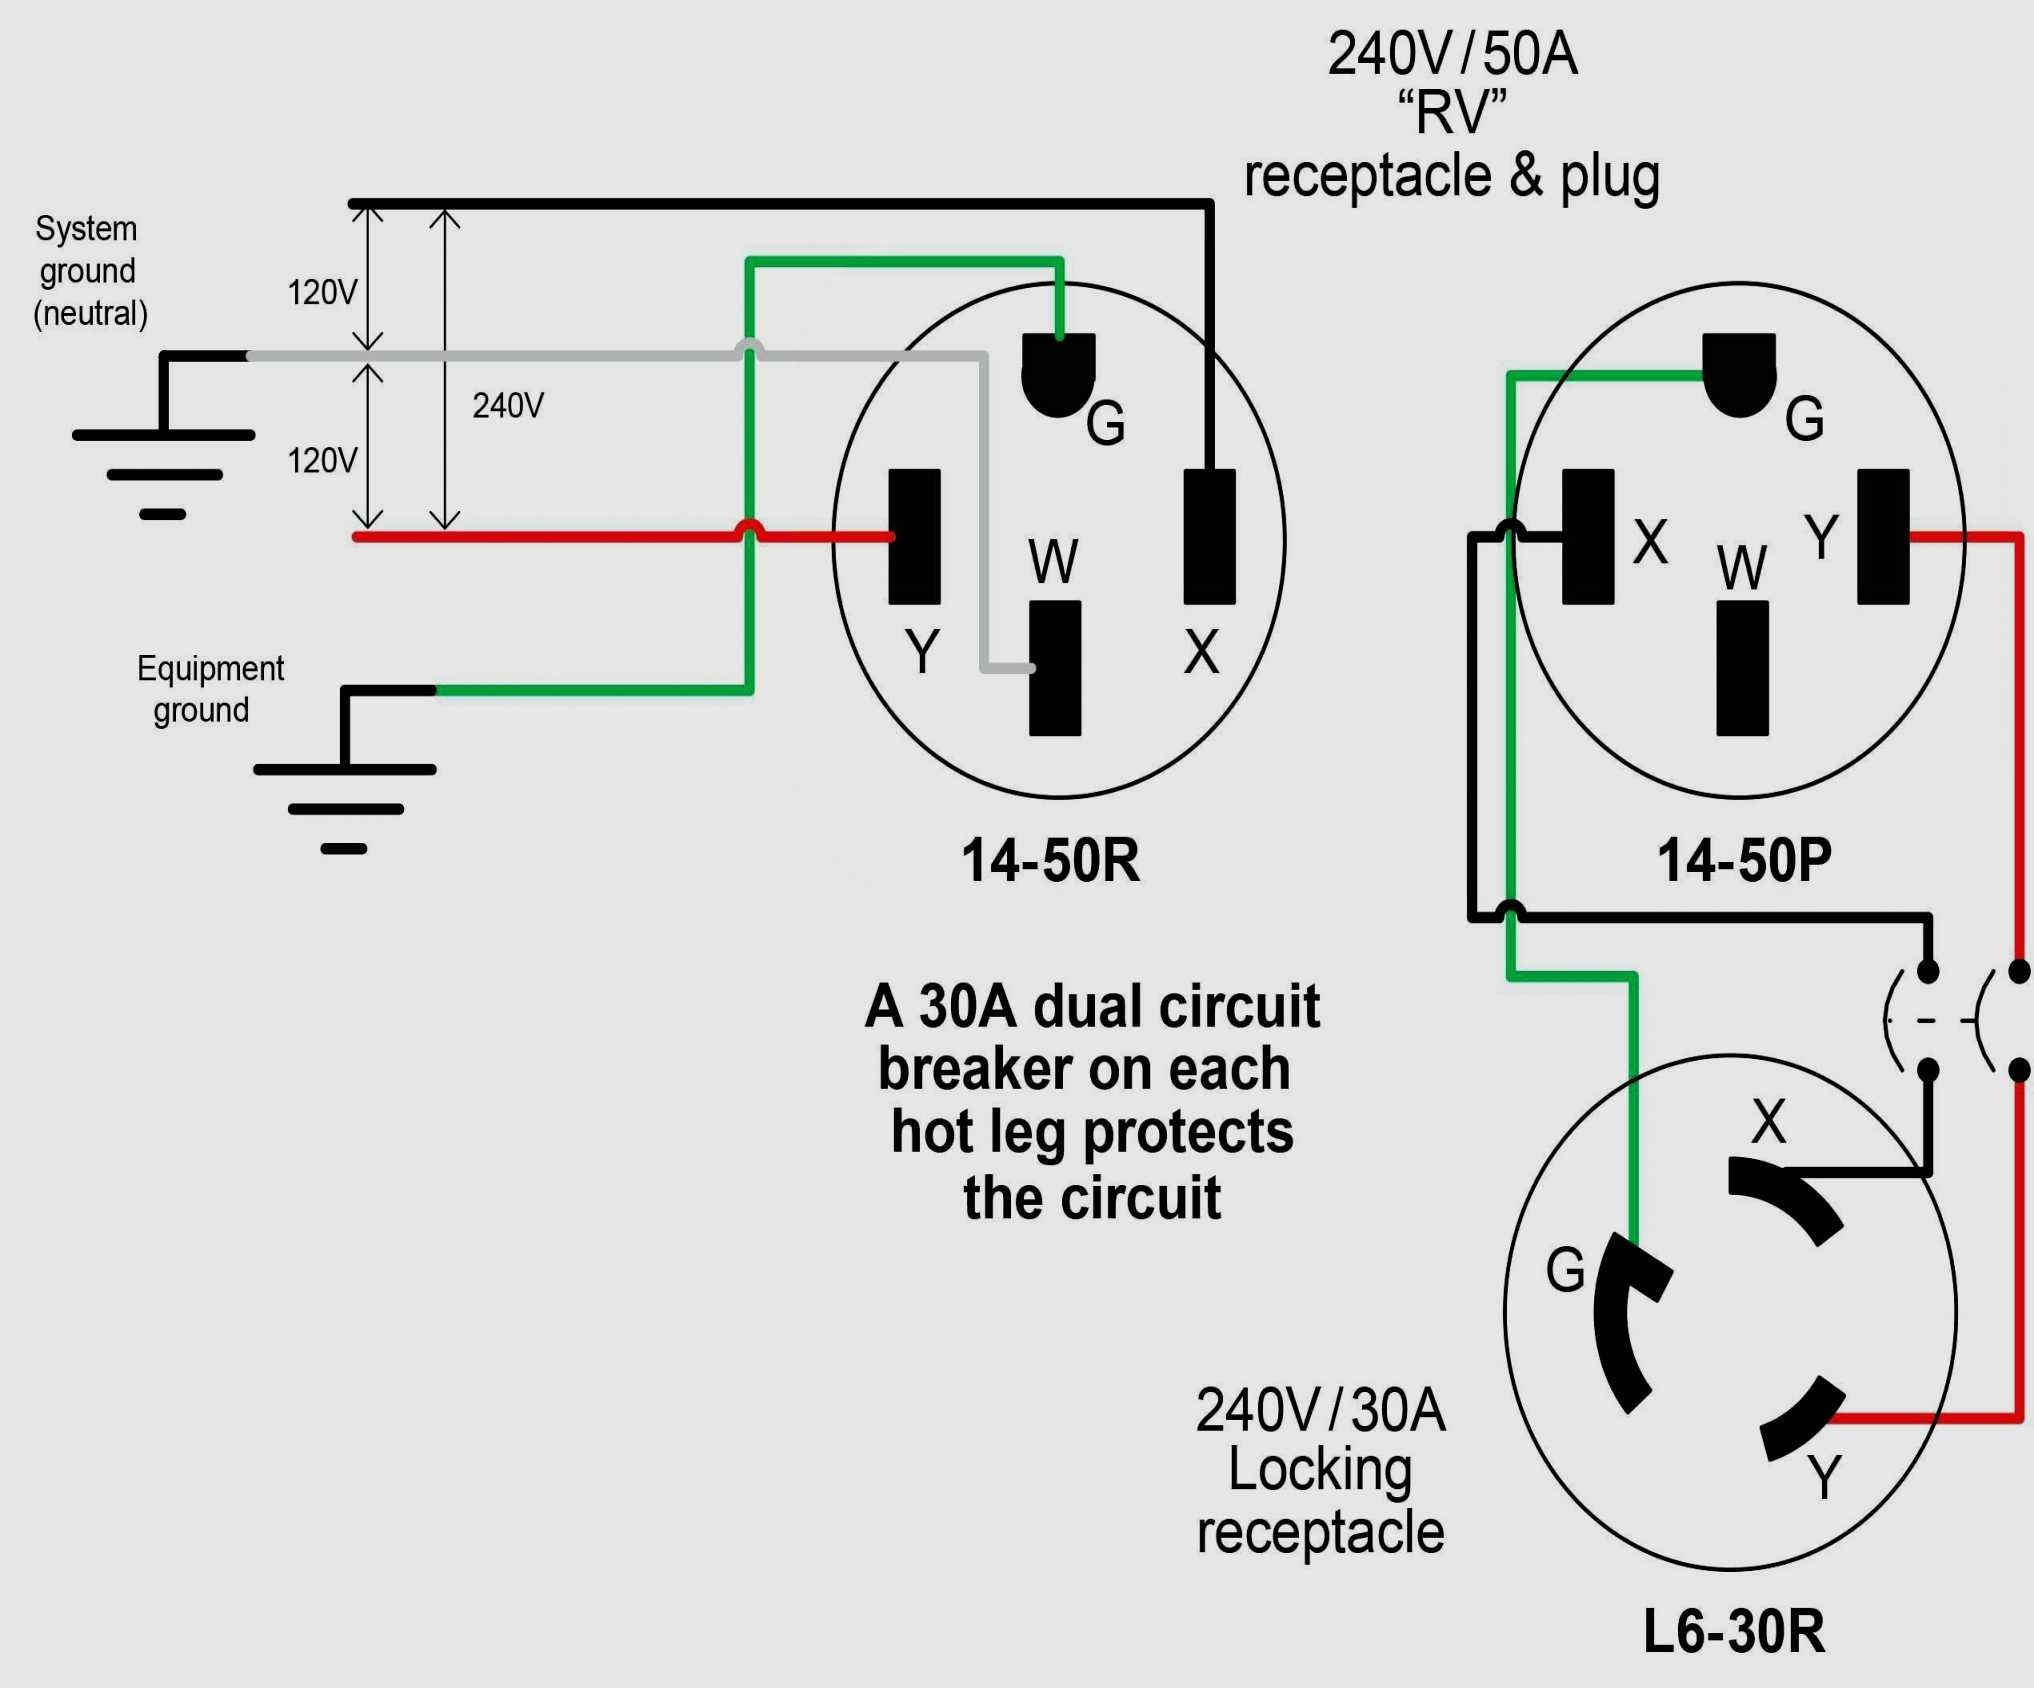 New Electric Diagram Diagram Wiringdiagram Diagramming Diagramm Visuals Visualisation Graphical Outlet Wiring Ac Plug Trailer Wiring Diagram